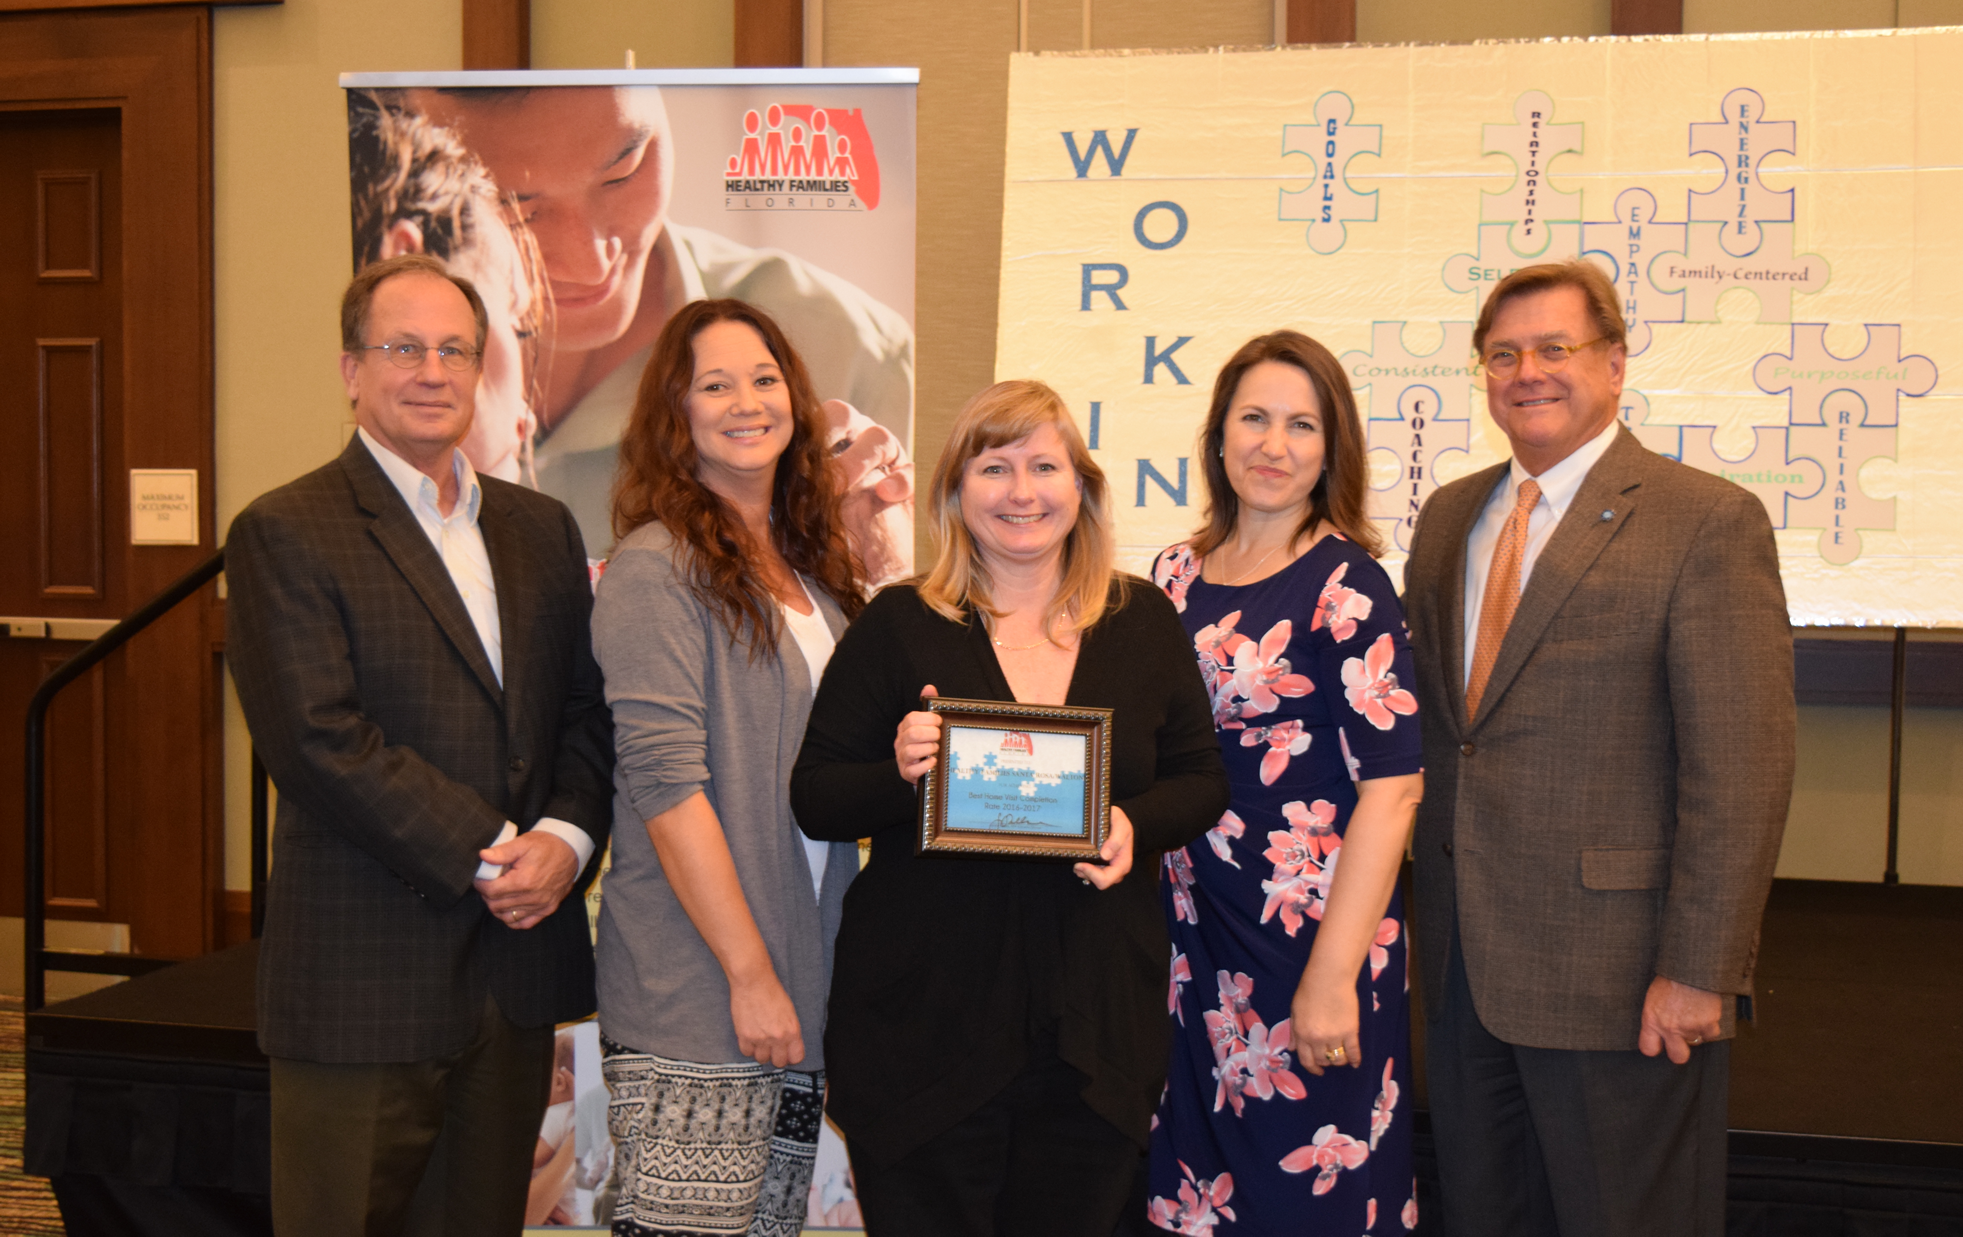 HF Santa Rosa-Walton Staff Receive Award